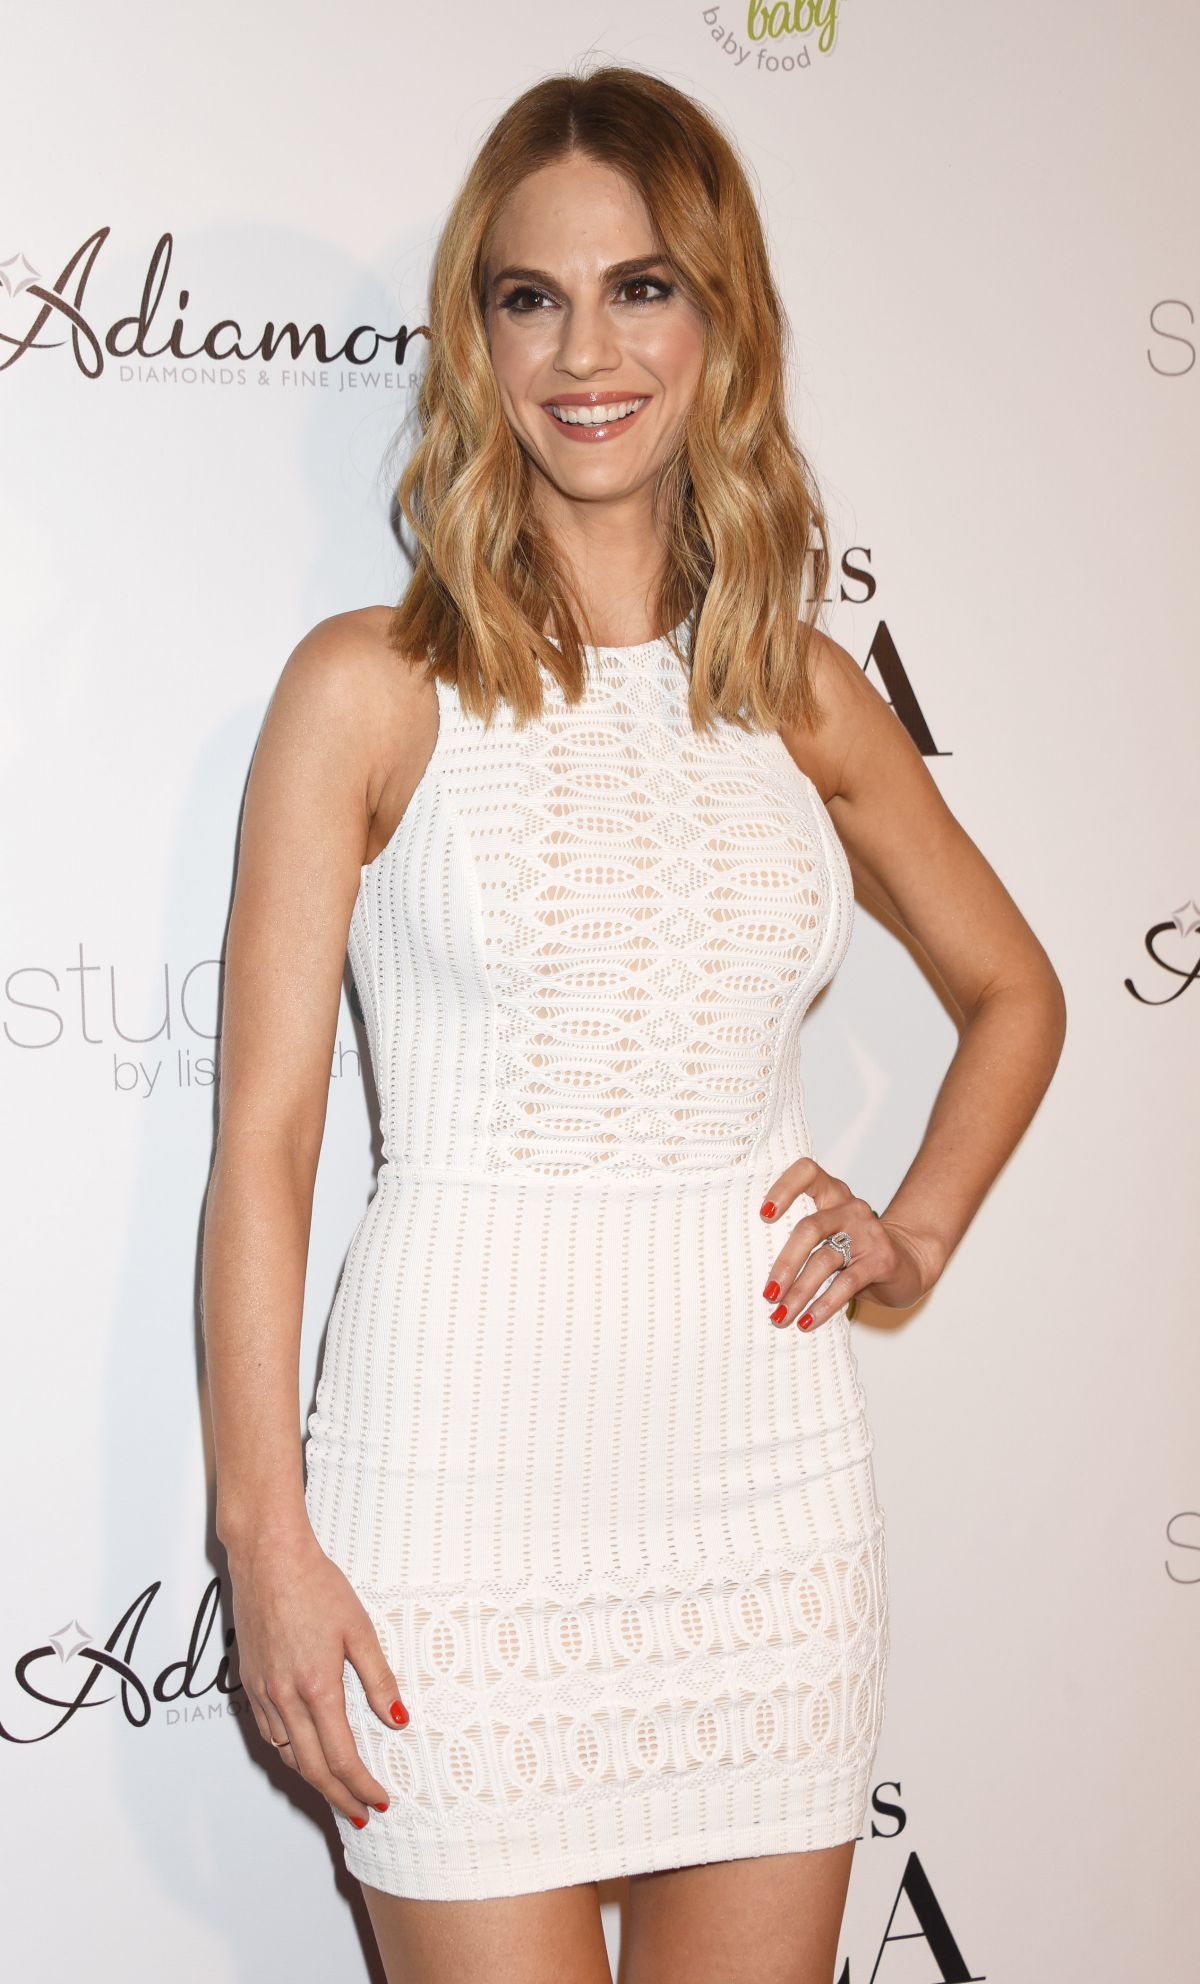 KELLY KRUGER at This is LA Premiere Party in Los Angeles 05/03/2017